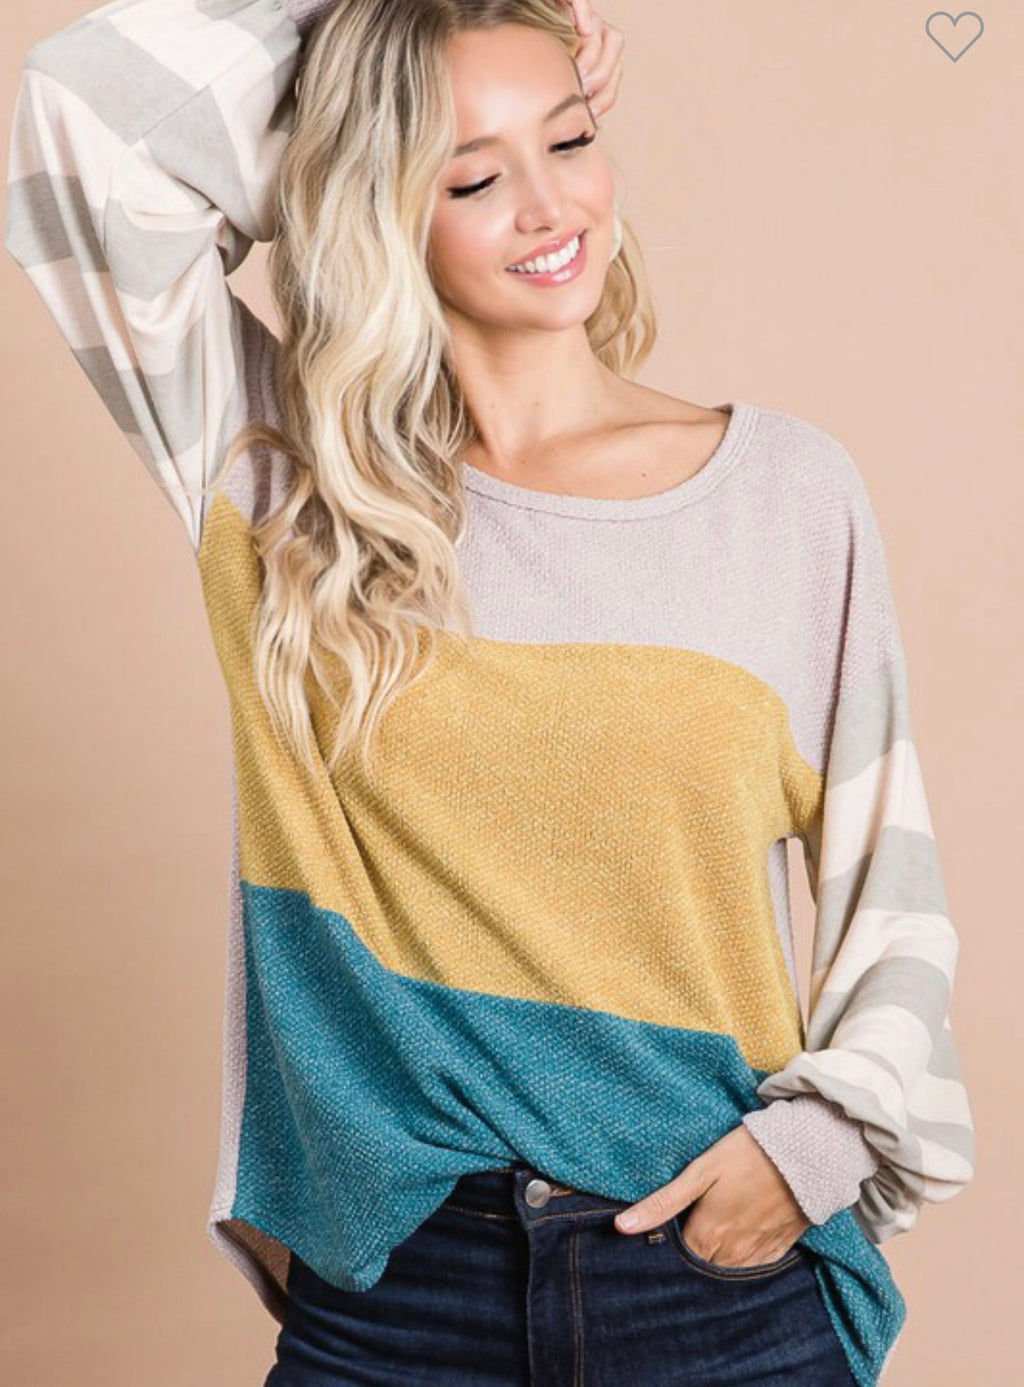 CHOOSE A SIDE TEAL & MUSTARD COLORBLOCK TOP